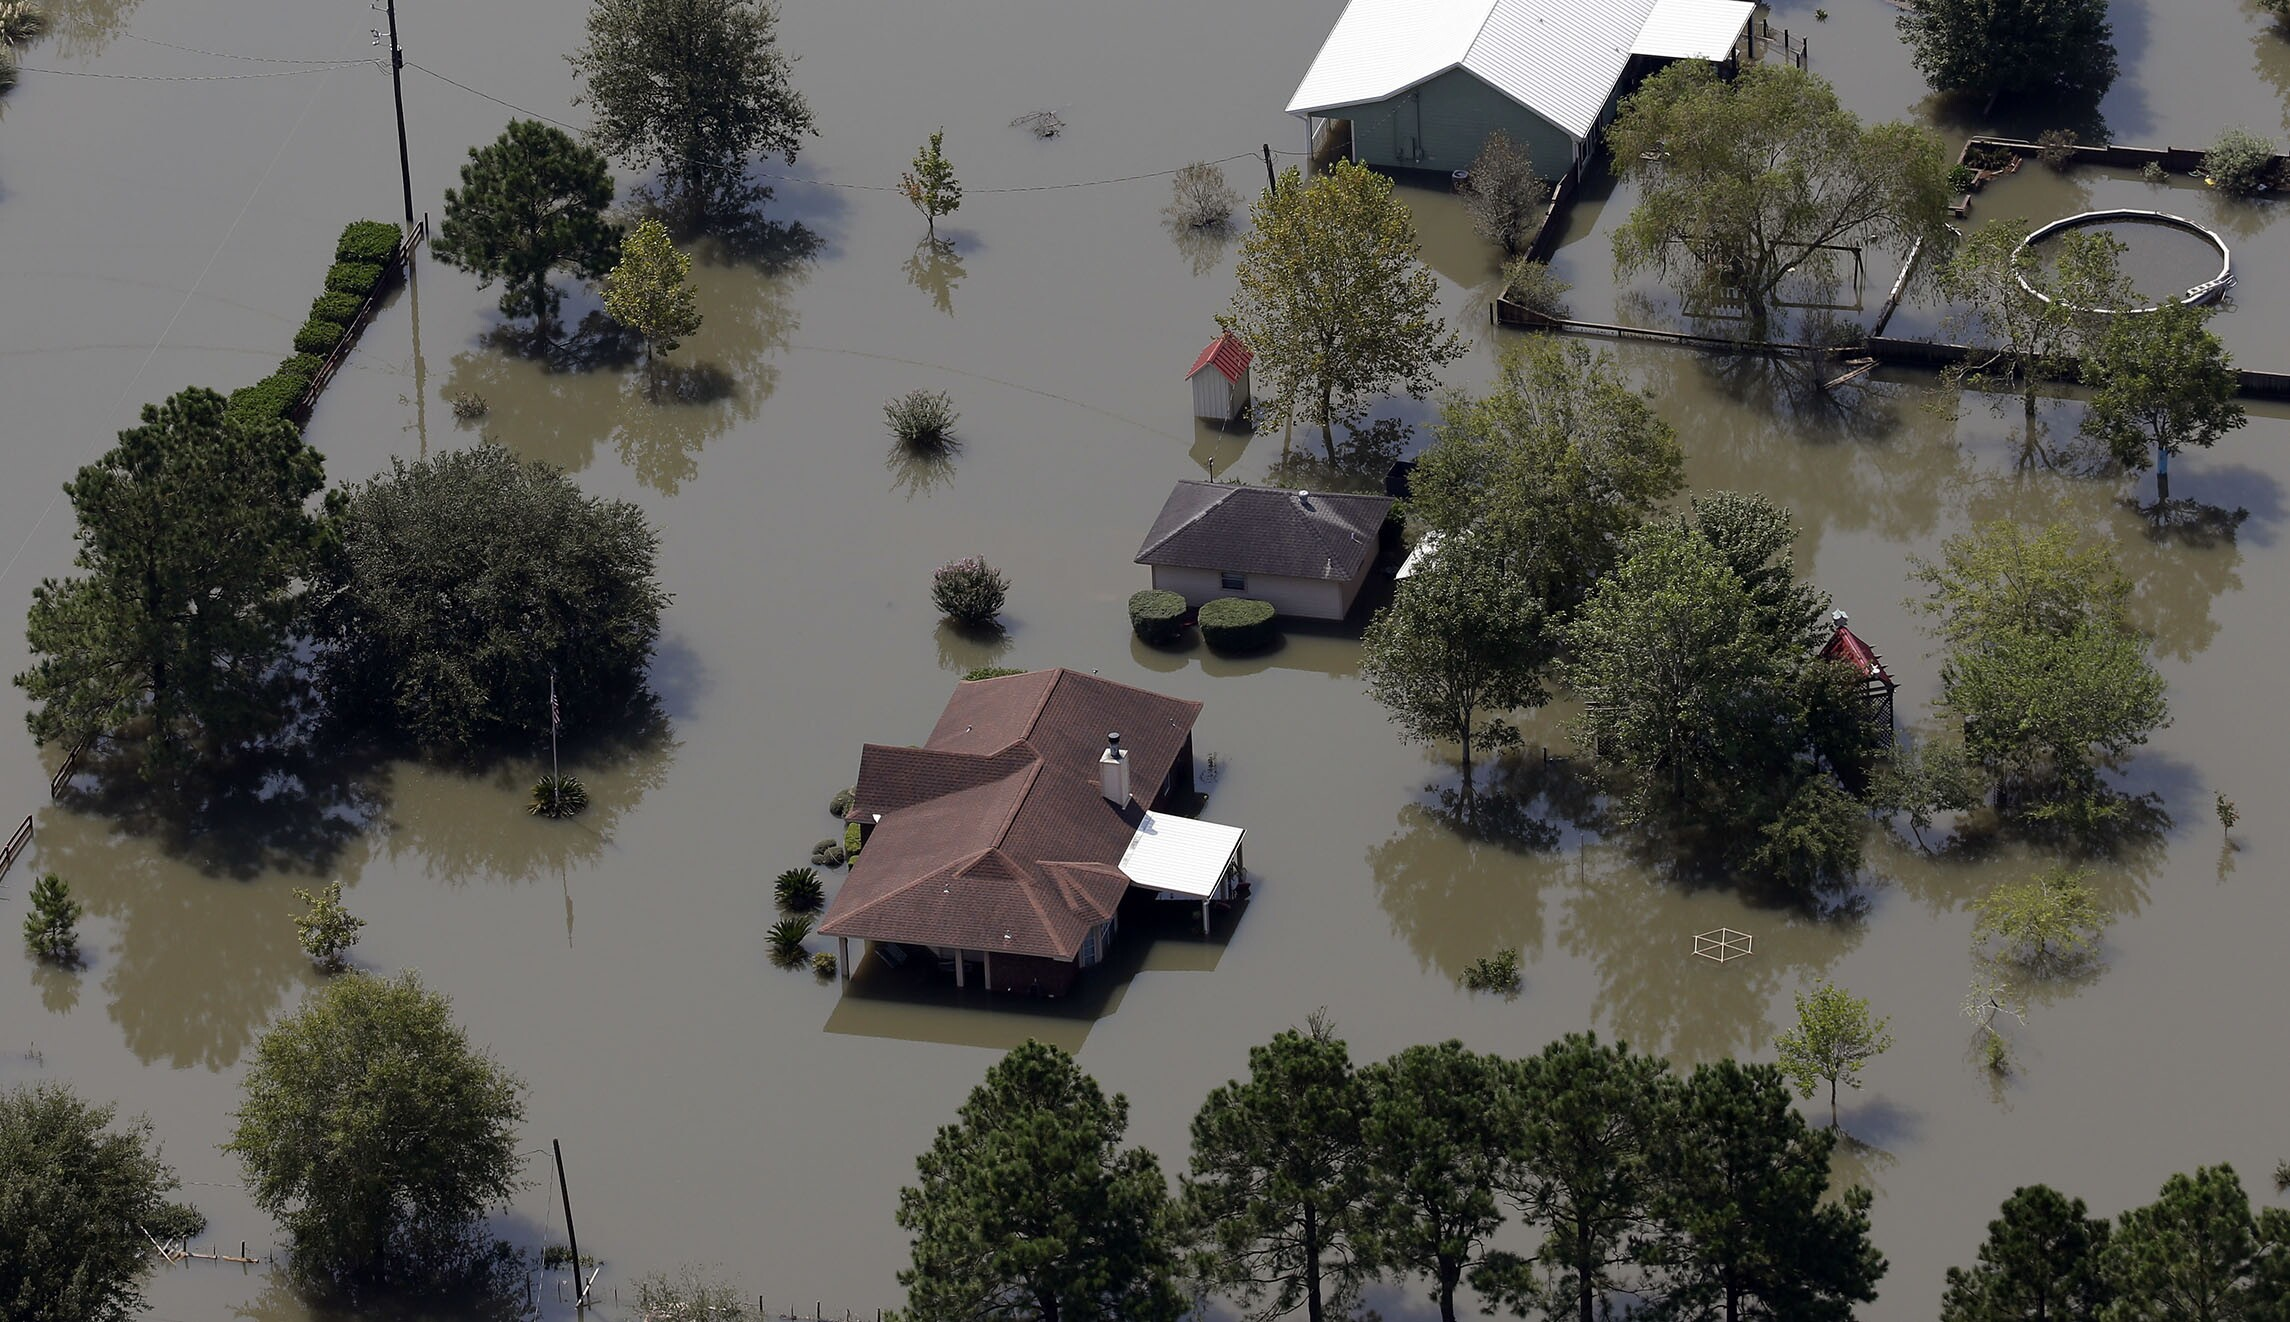 many people in flood prone areas go without insurance